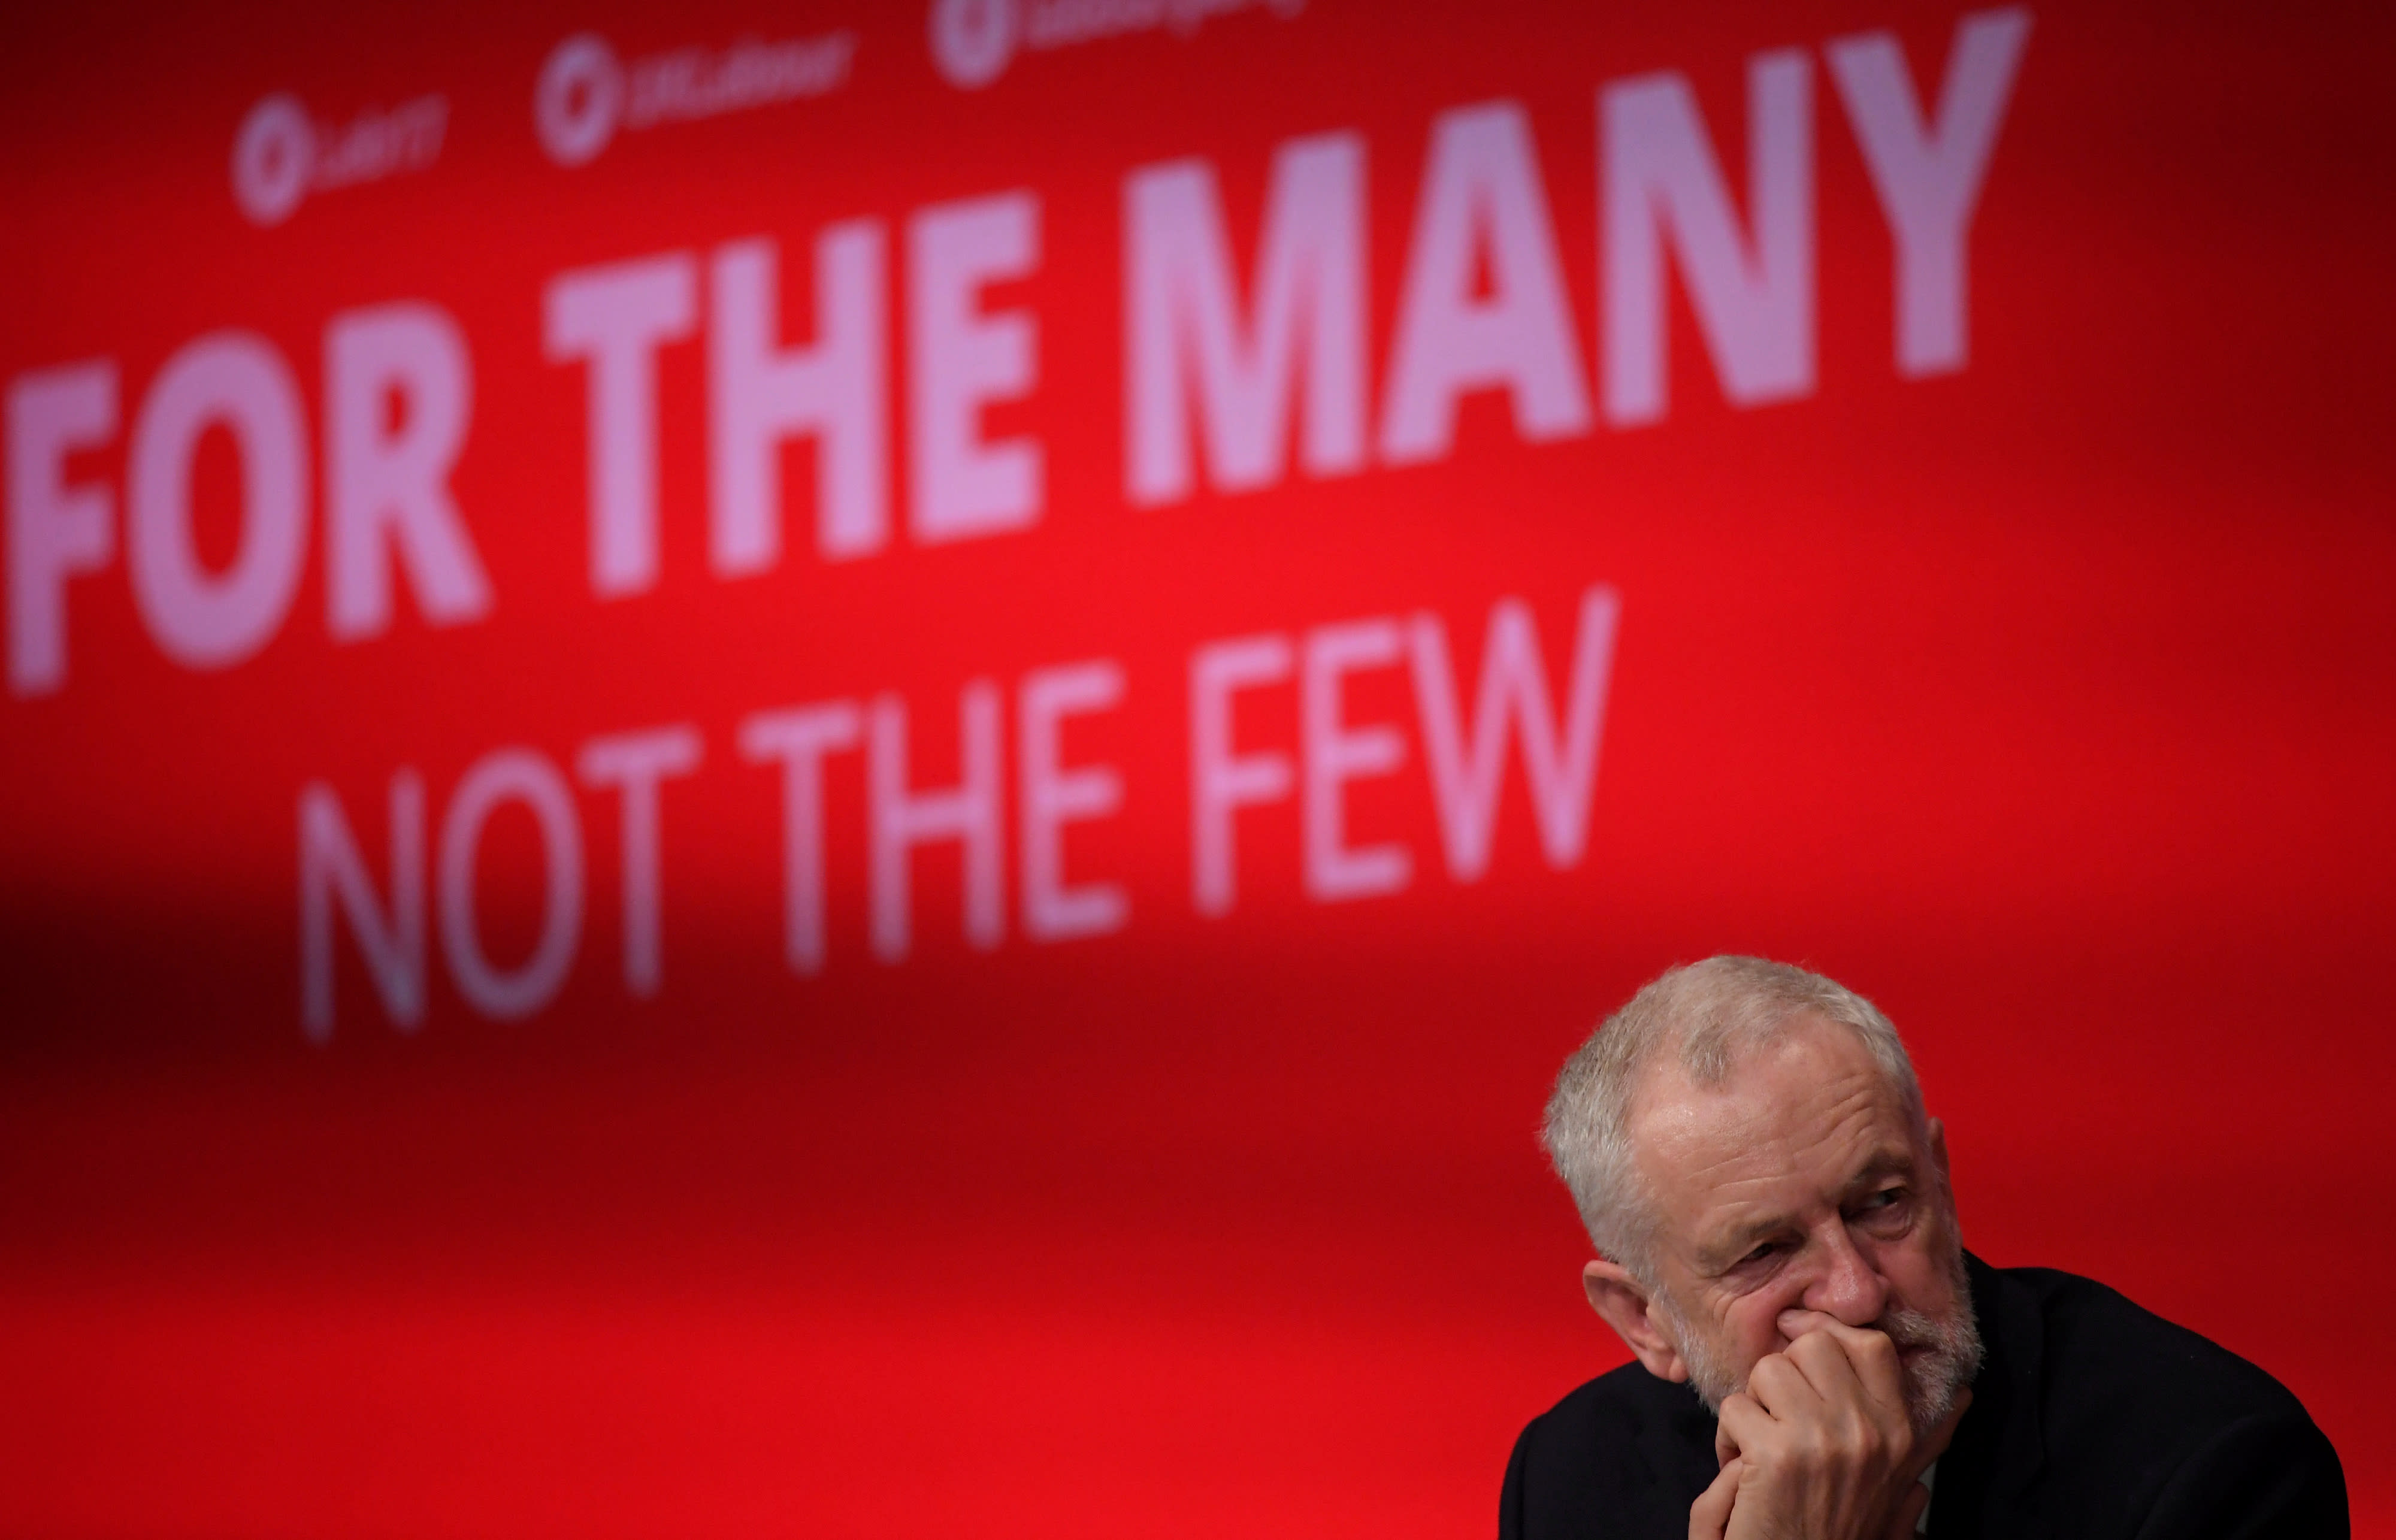 Britain's opposition Labour party leader Jeremy Corbyn listens to speeches during the Labour party Conference in Brighton, Britain, September 24, 2017. (Reuters)